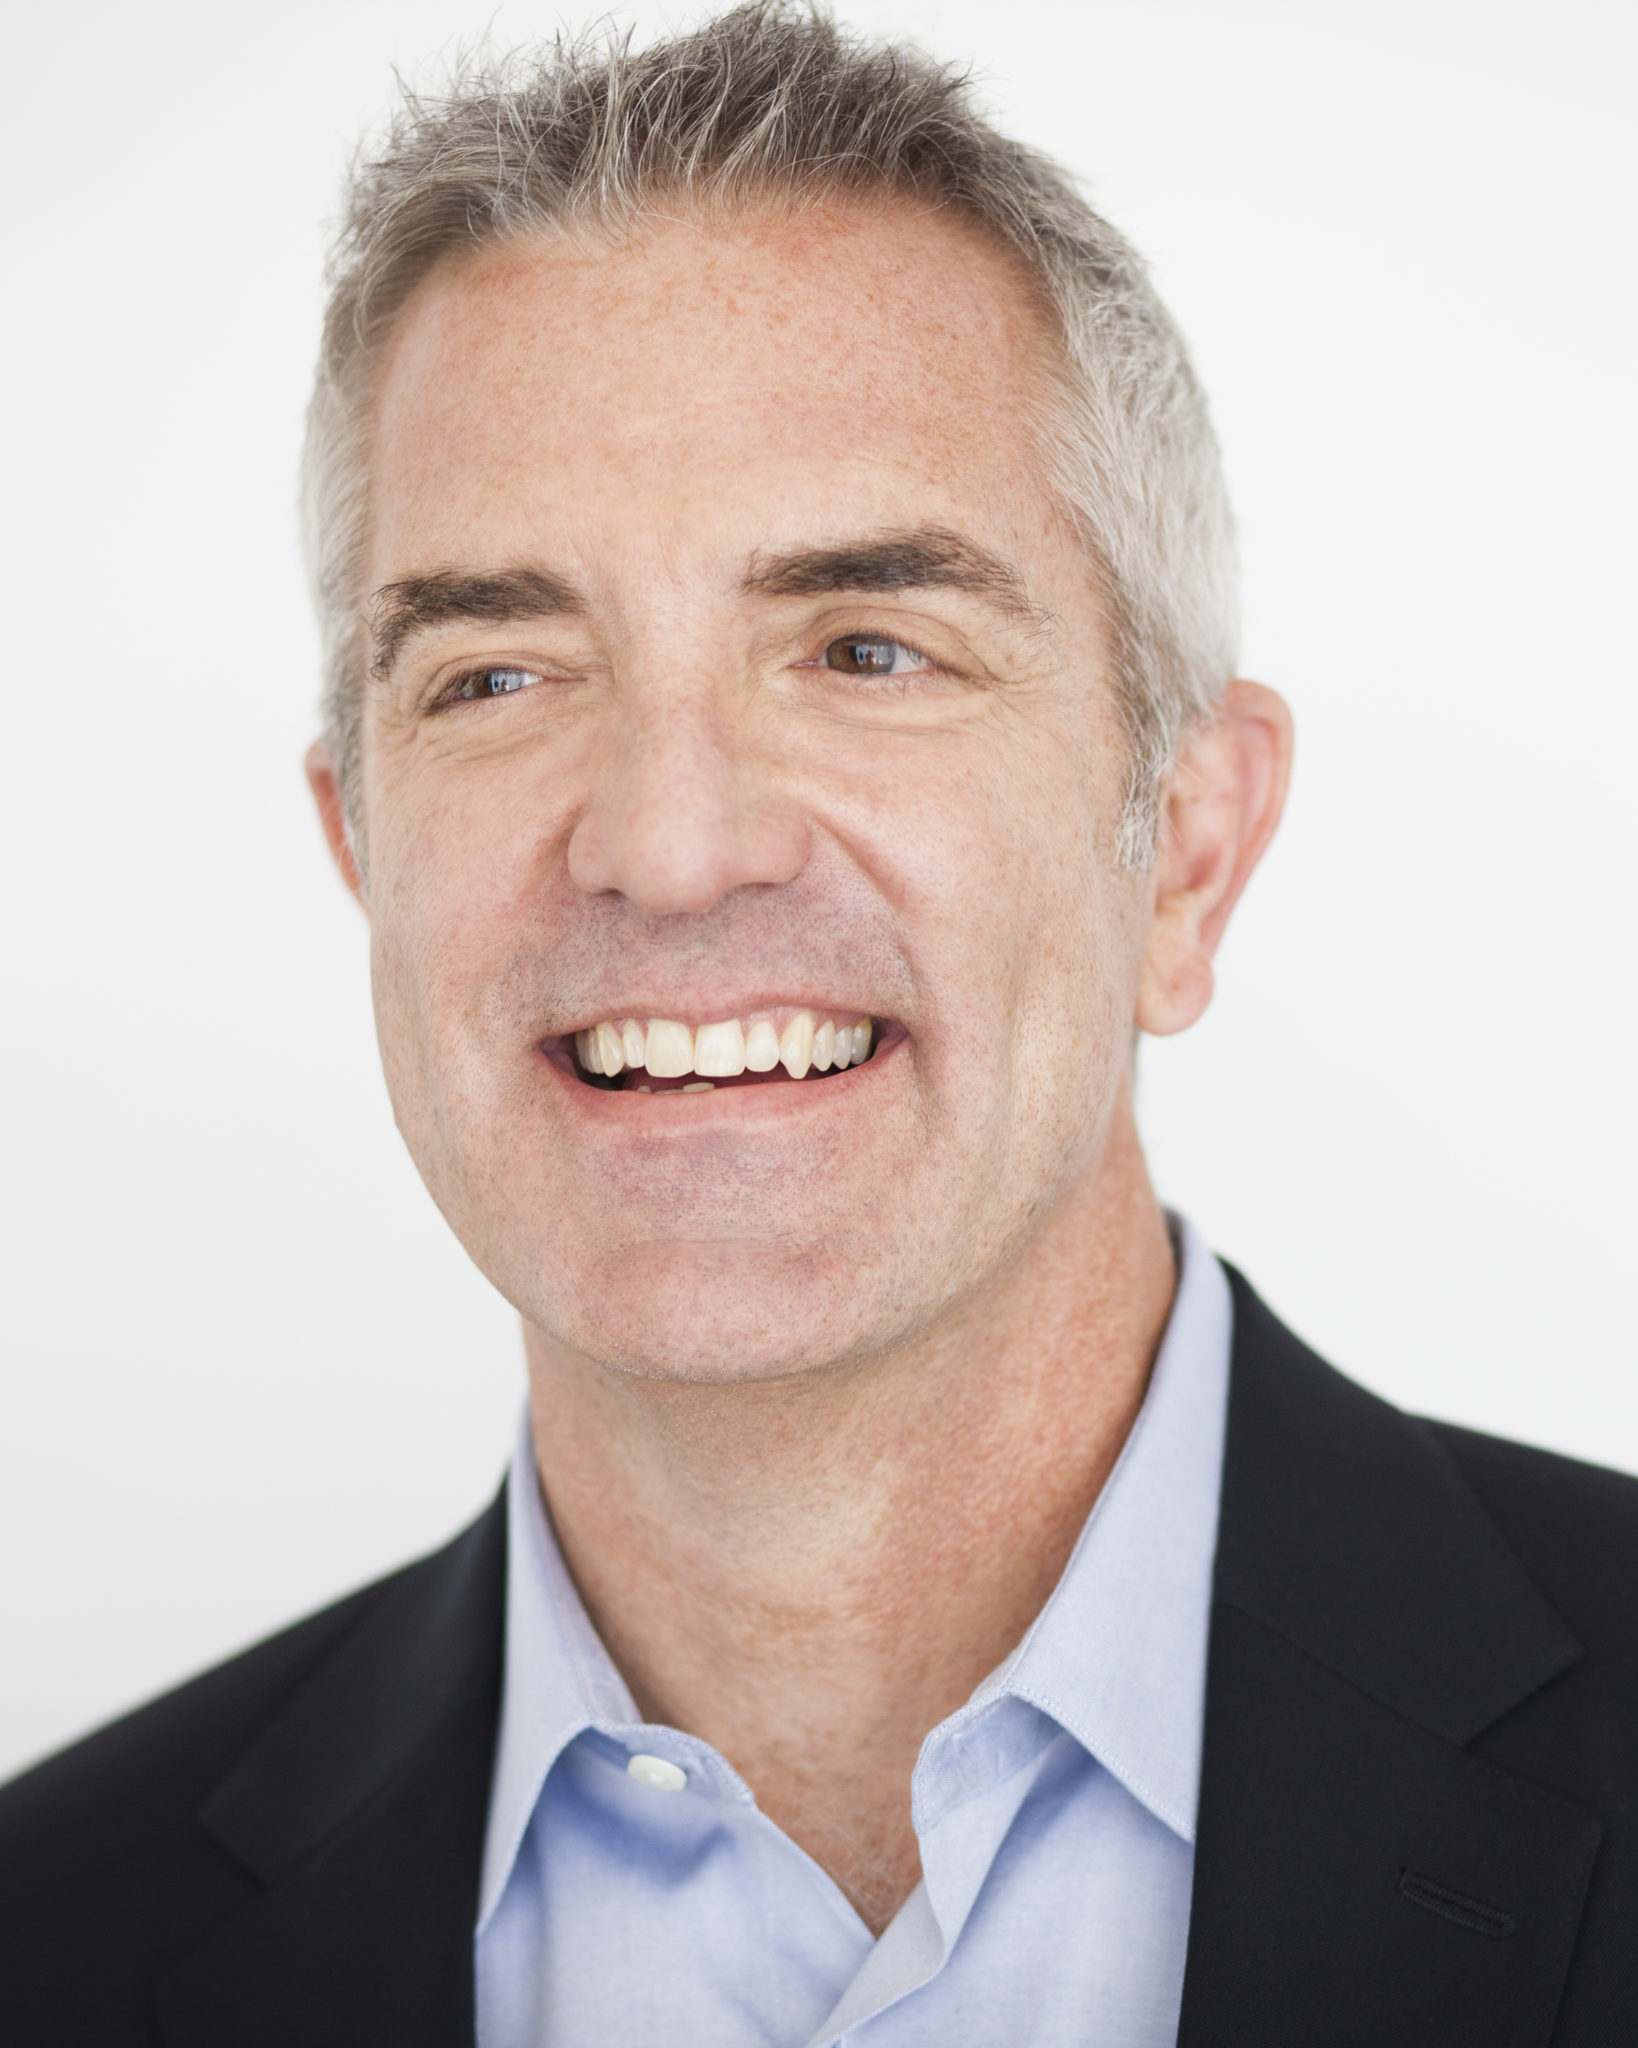 CANNAPRENEUR PARTNERS APPOINTS think2perform PRESIDENT CHUCK WACHENDORFER TO EXECUTIVE BOARD